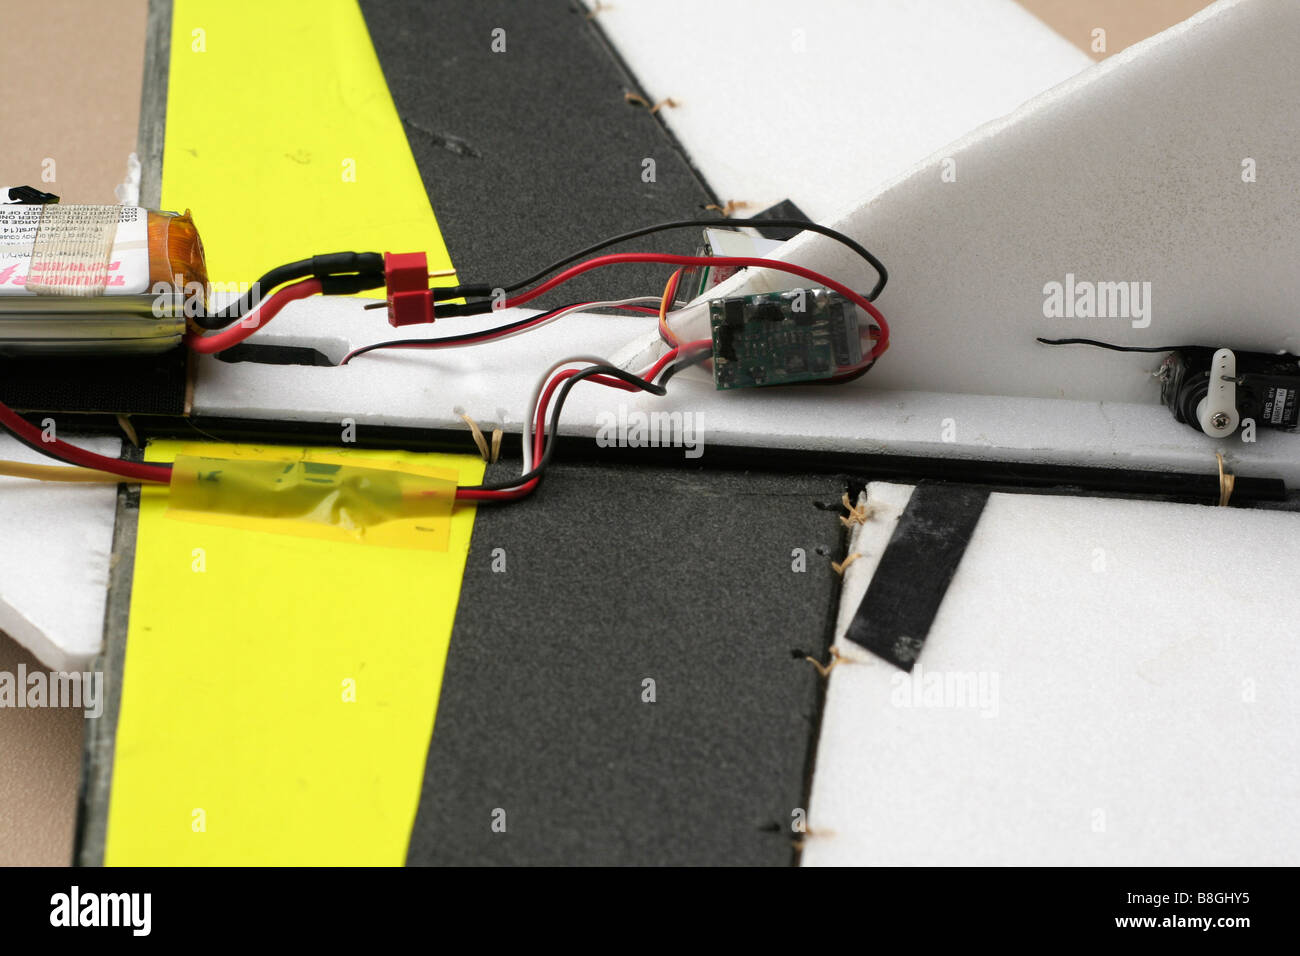 Battery Control Circuit And Servo On Powered Radio Controlling Controlled Model Aeroplane